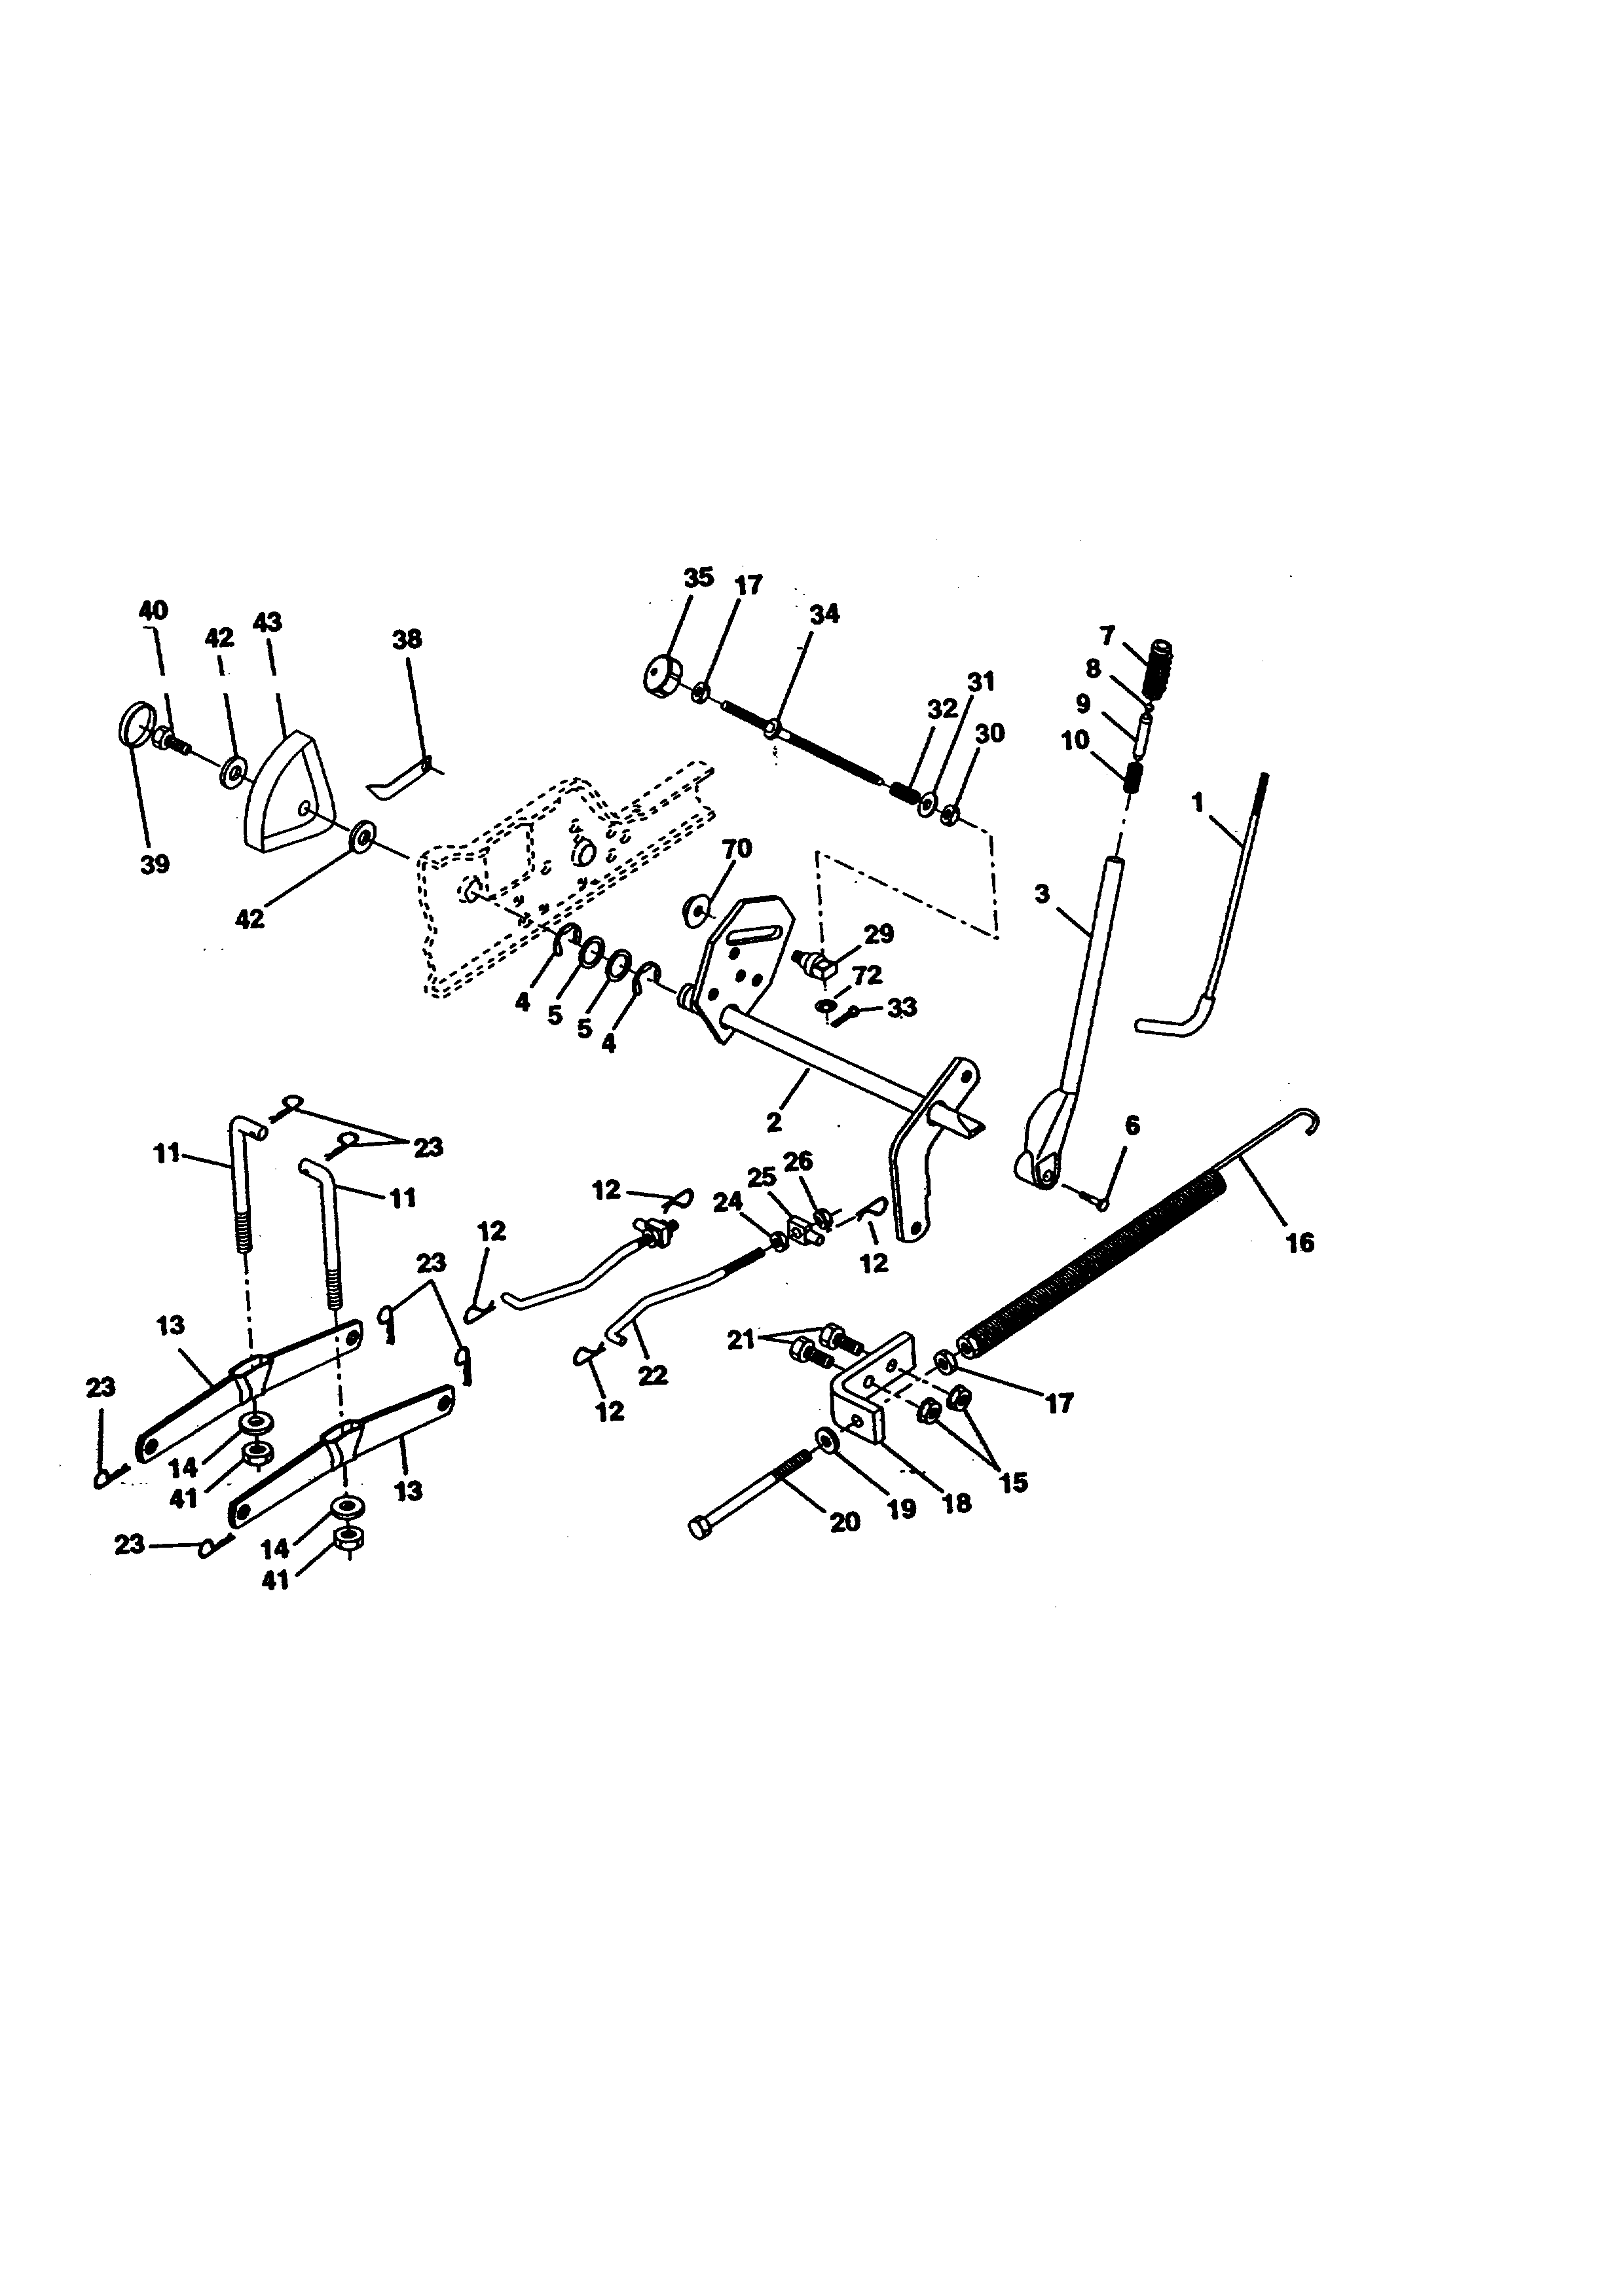 LIFT ASSEMBLY Diagram & Parts List for Model 917273011